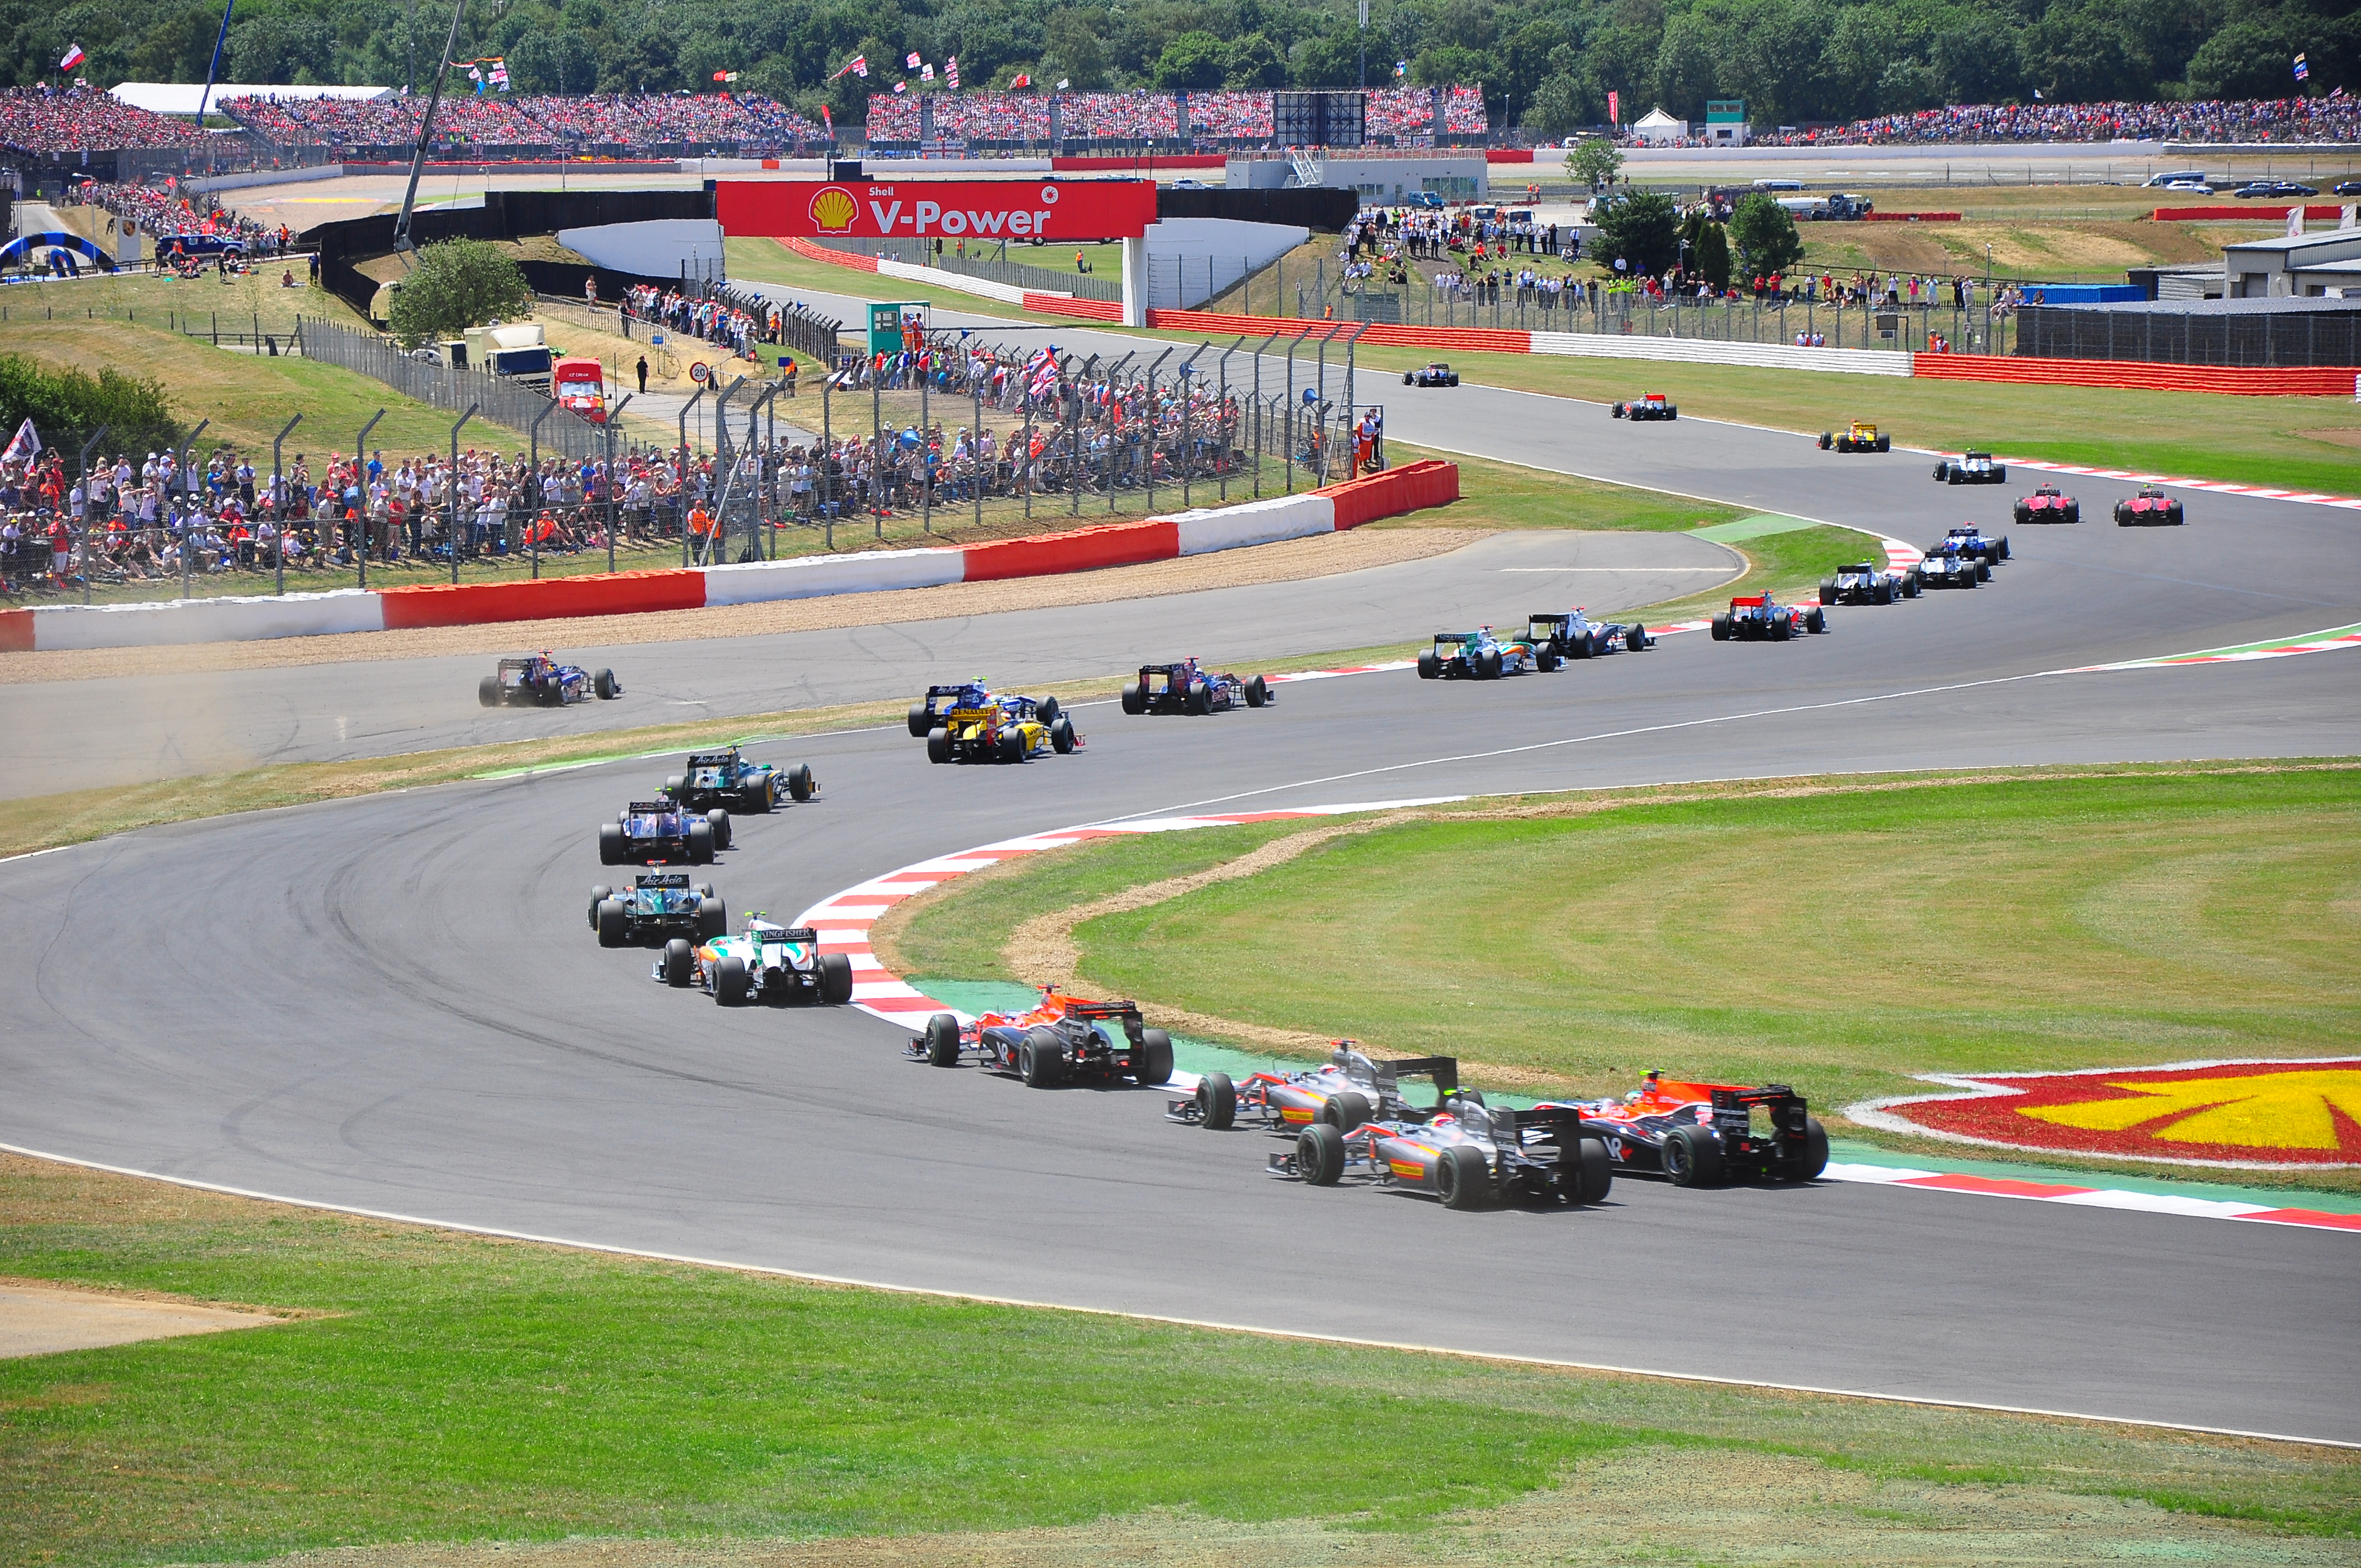 F1 2013: British GP Preview - Silverstone: The Heart of Motorsport